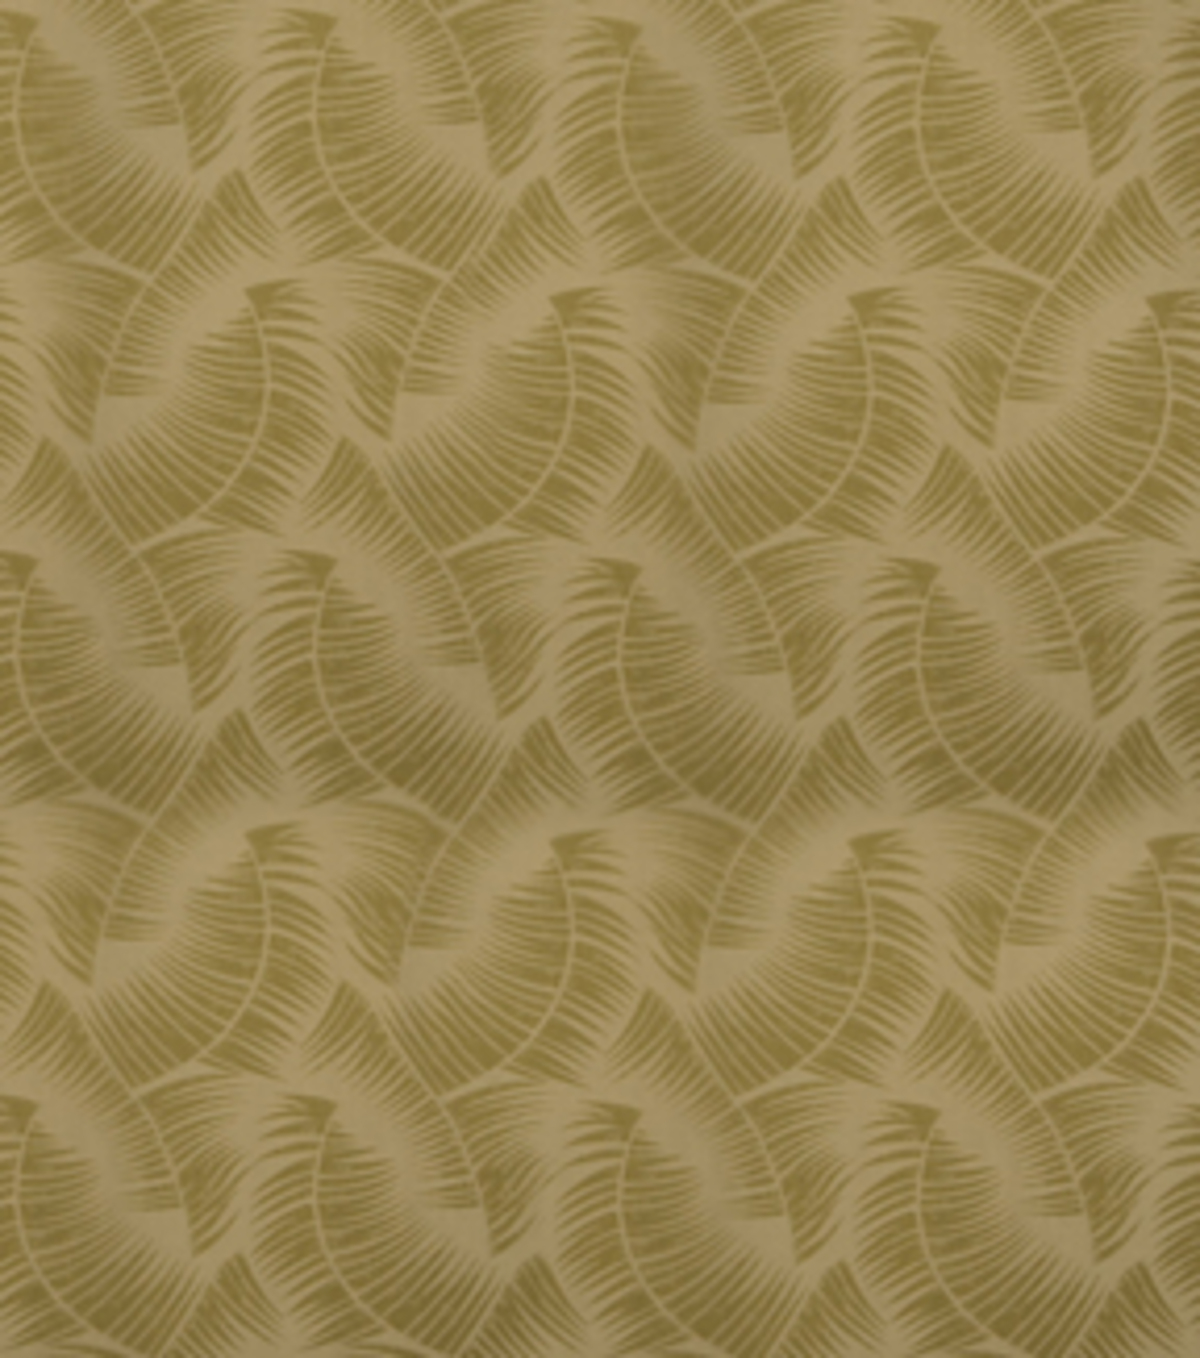 Home Decor 8\u0022x8\u0022 Fabric Swatch-Eaton Square Morocco Moss